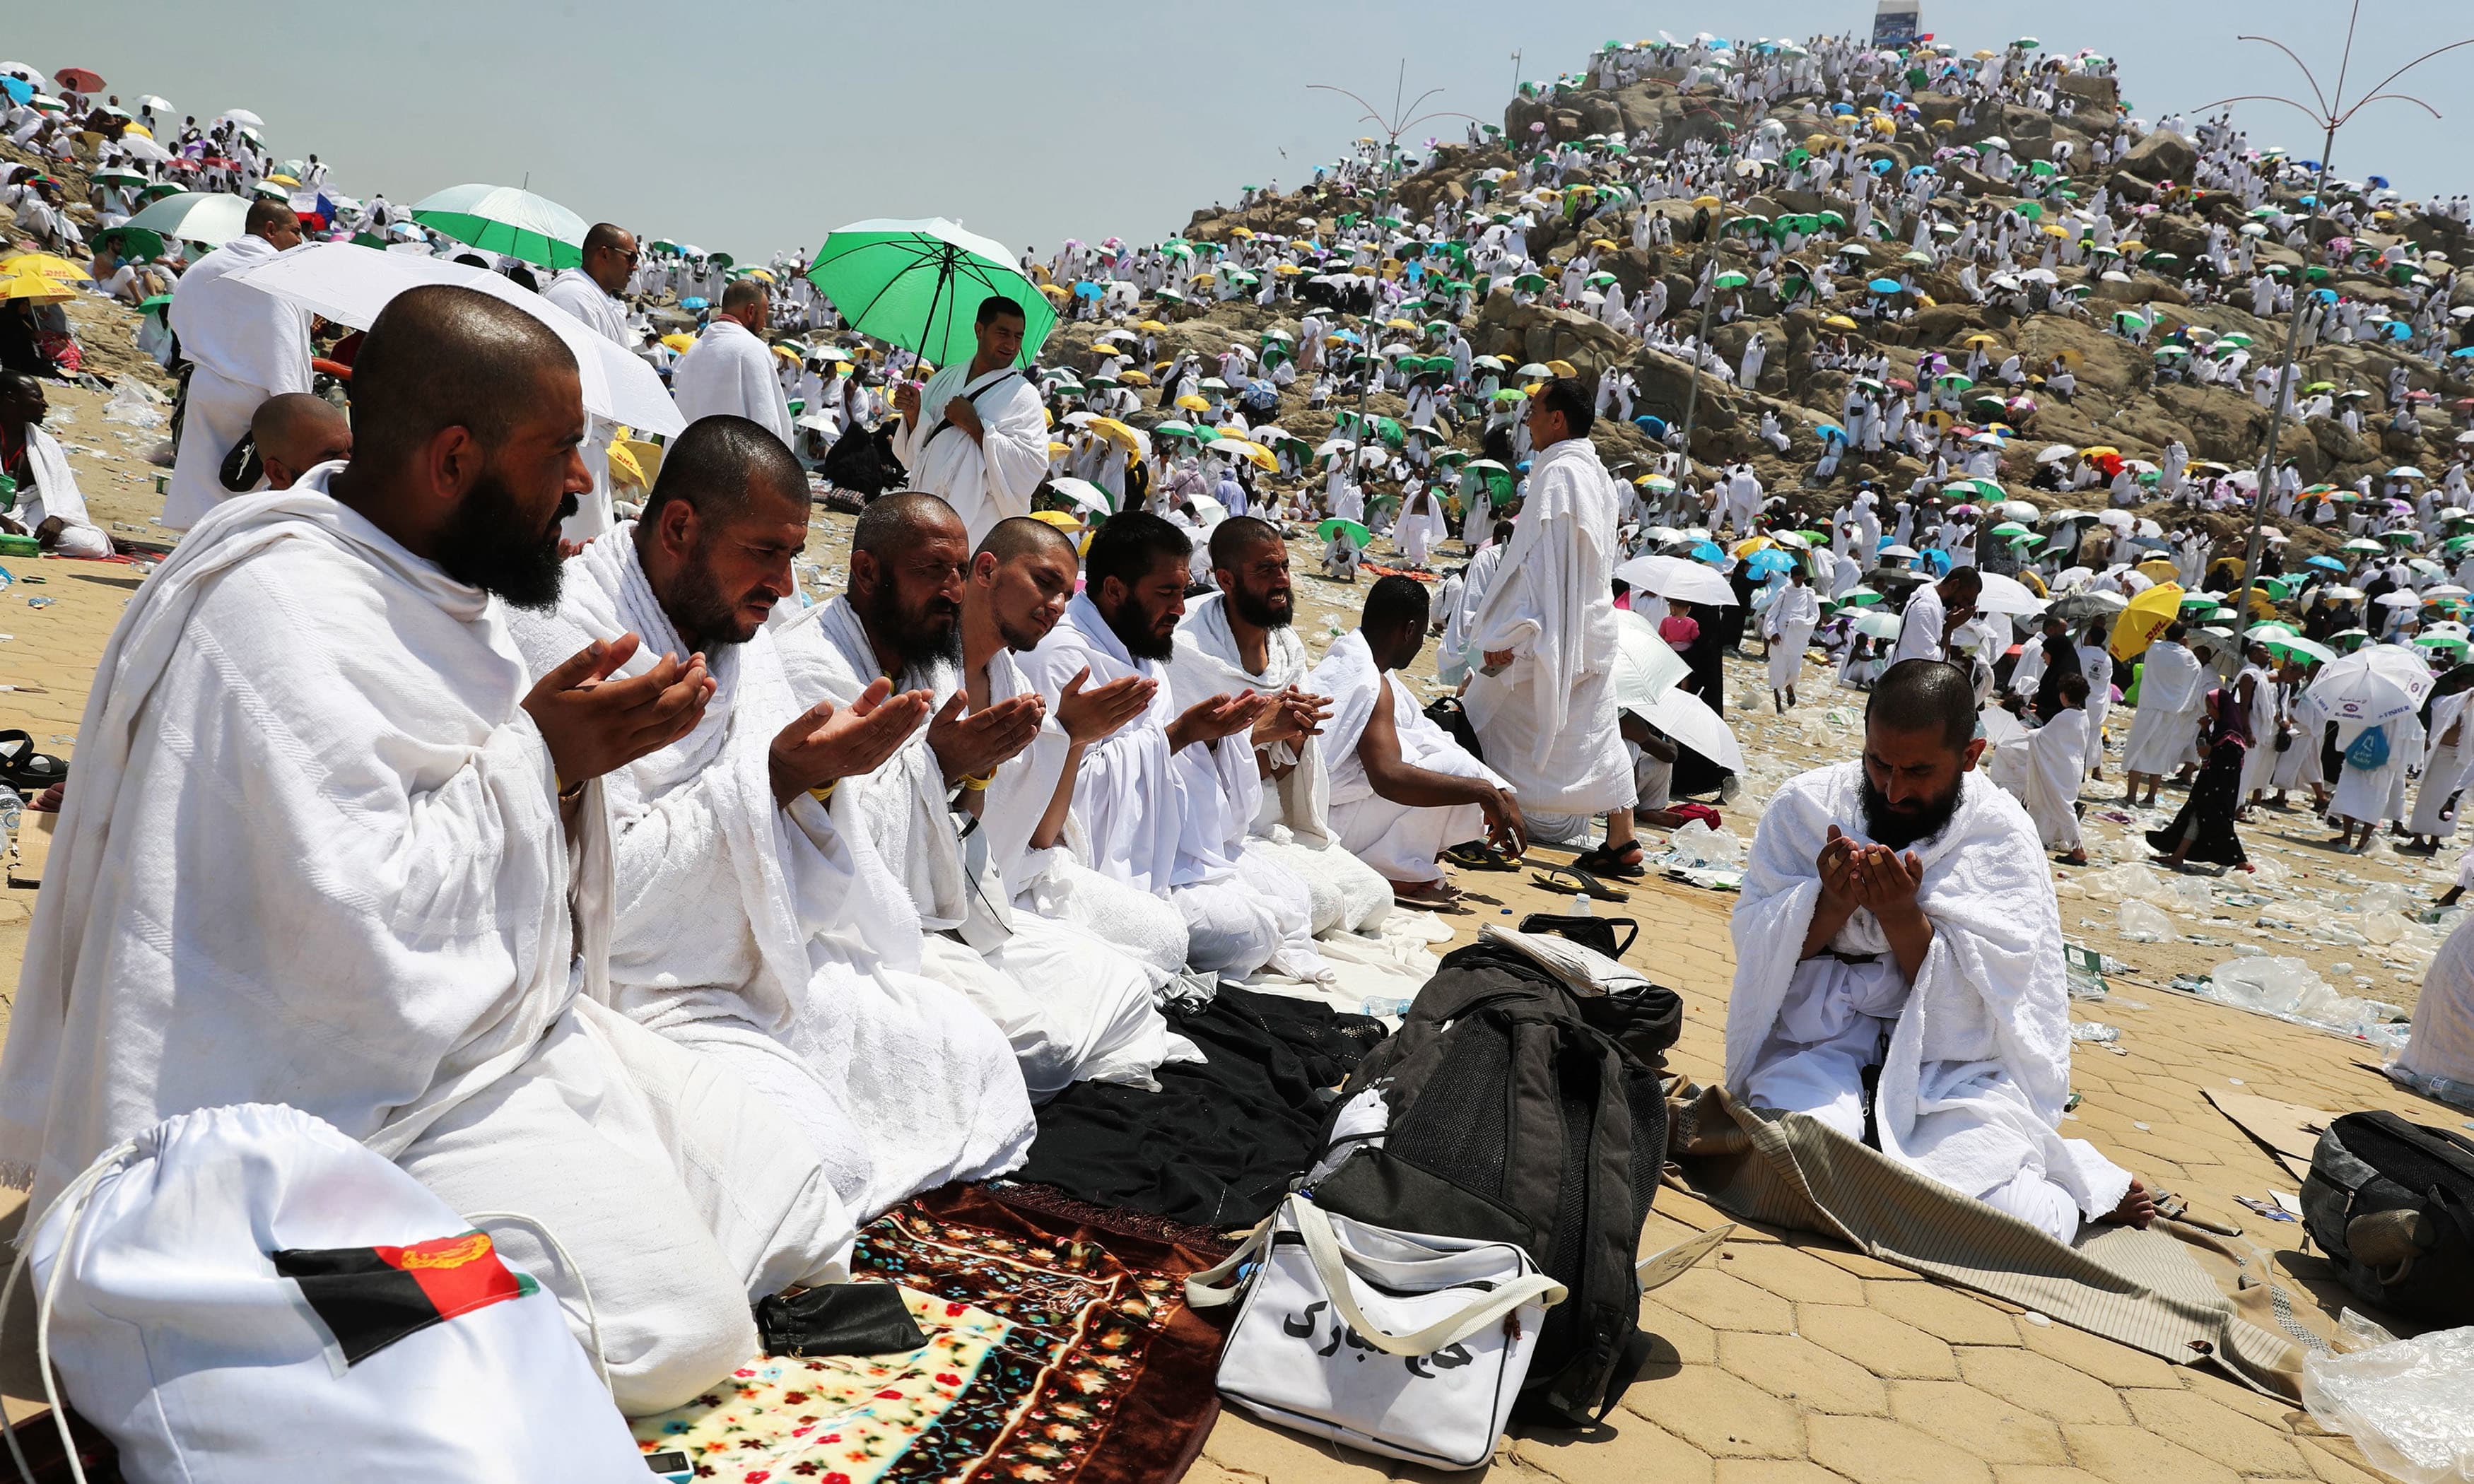 Pilgrims pray at Mount Arafat, also known as Jabal al-Rahma (Mount of Mercy). —AFP